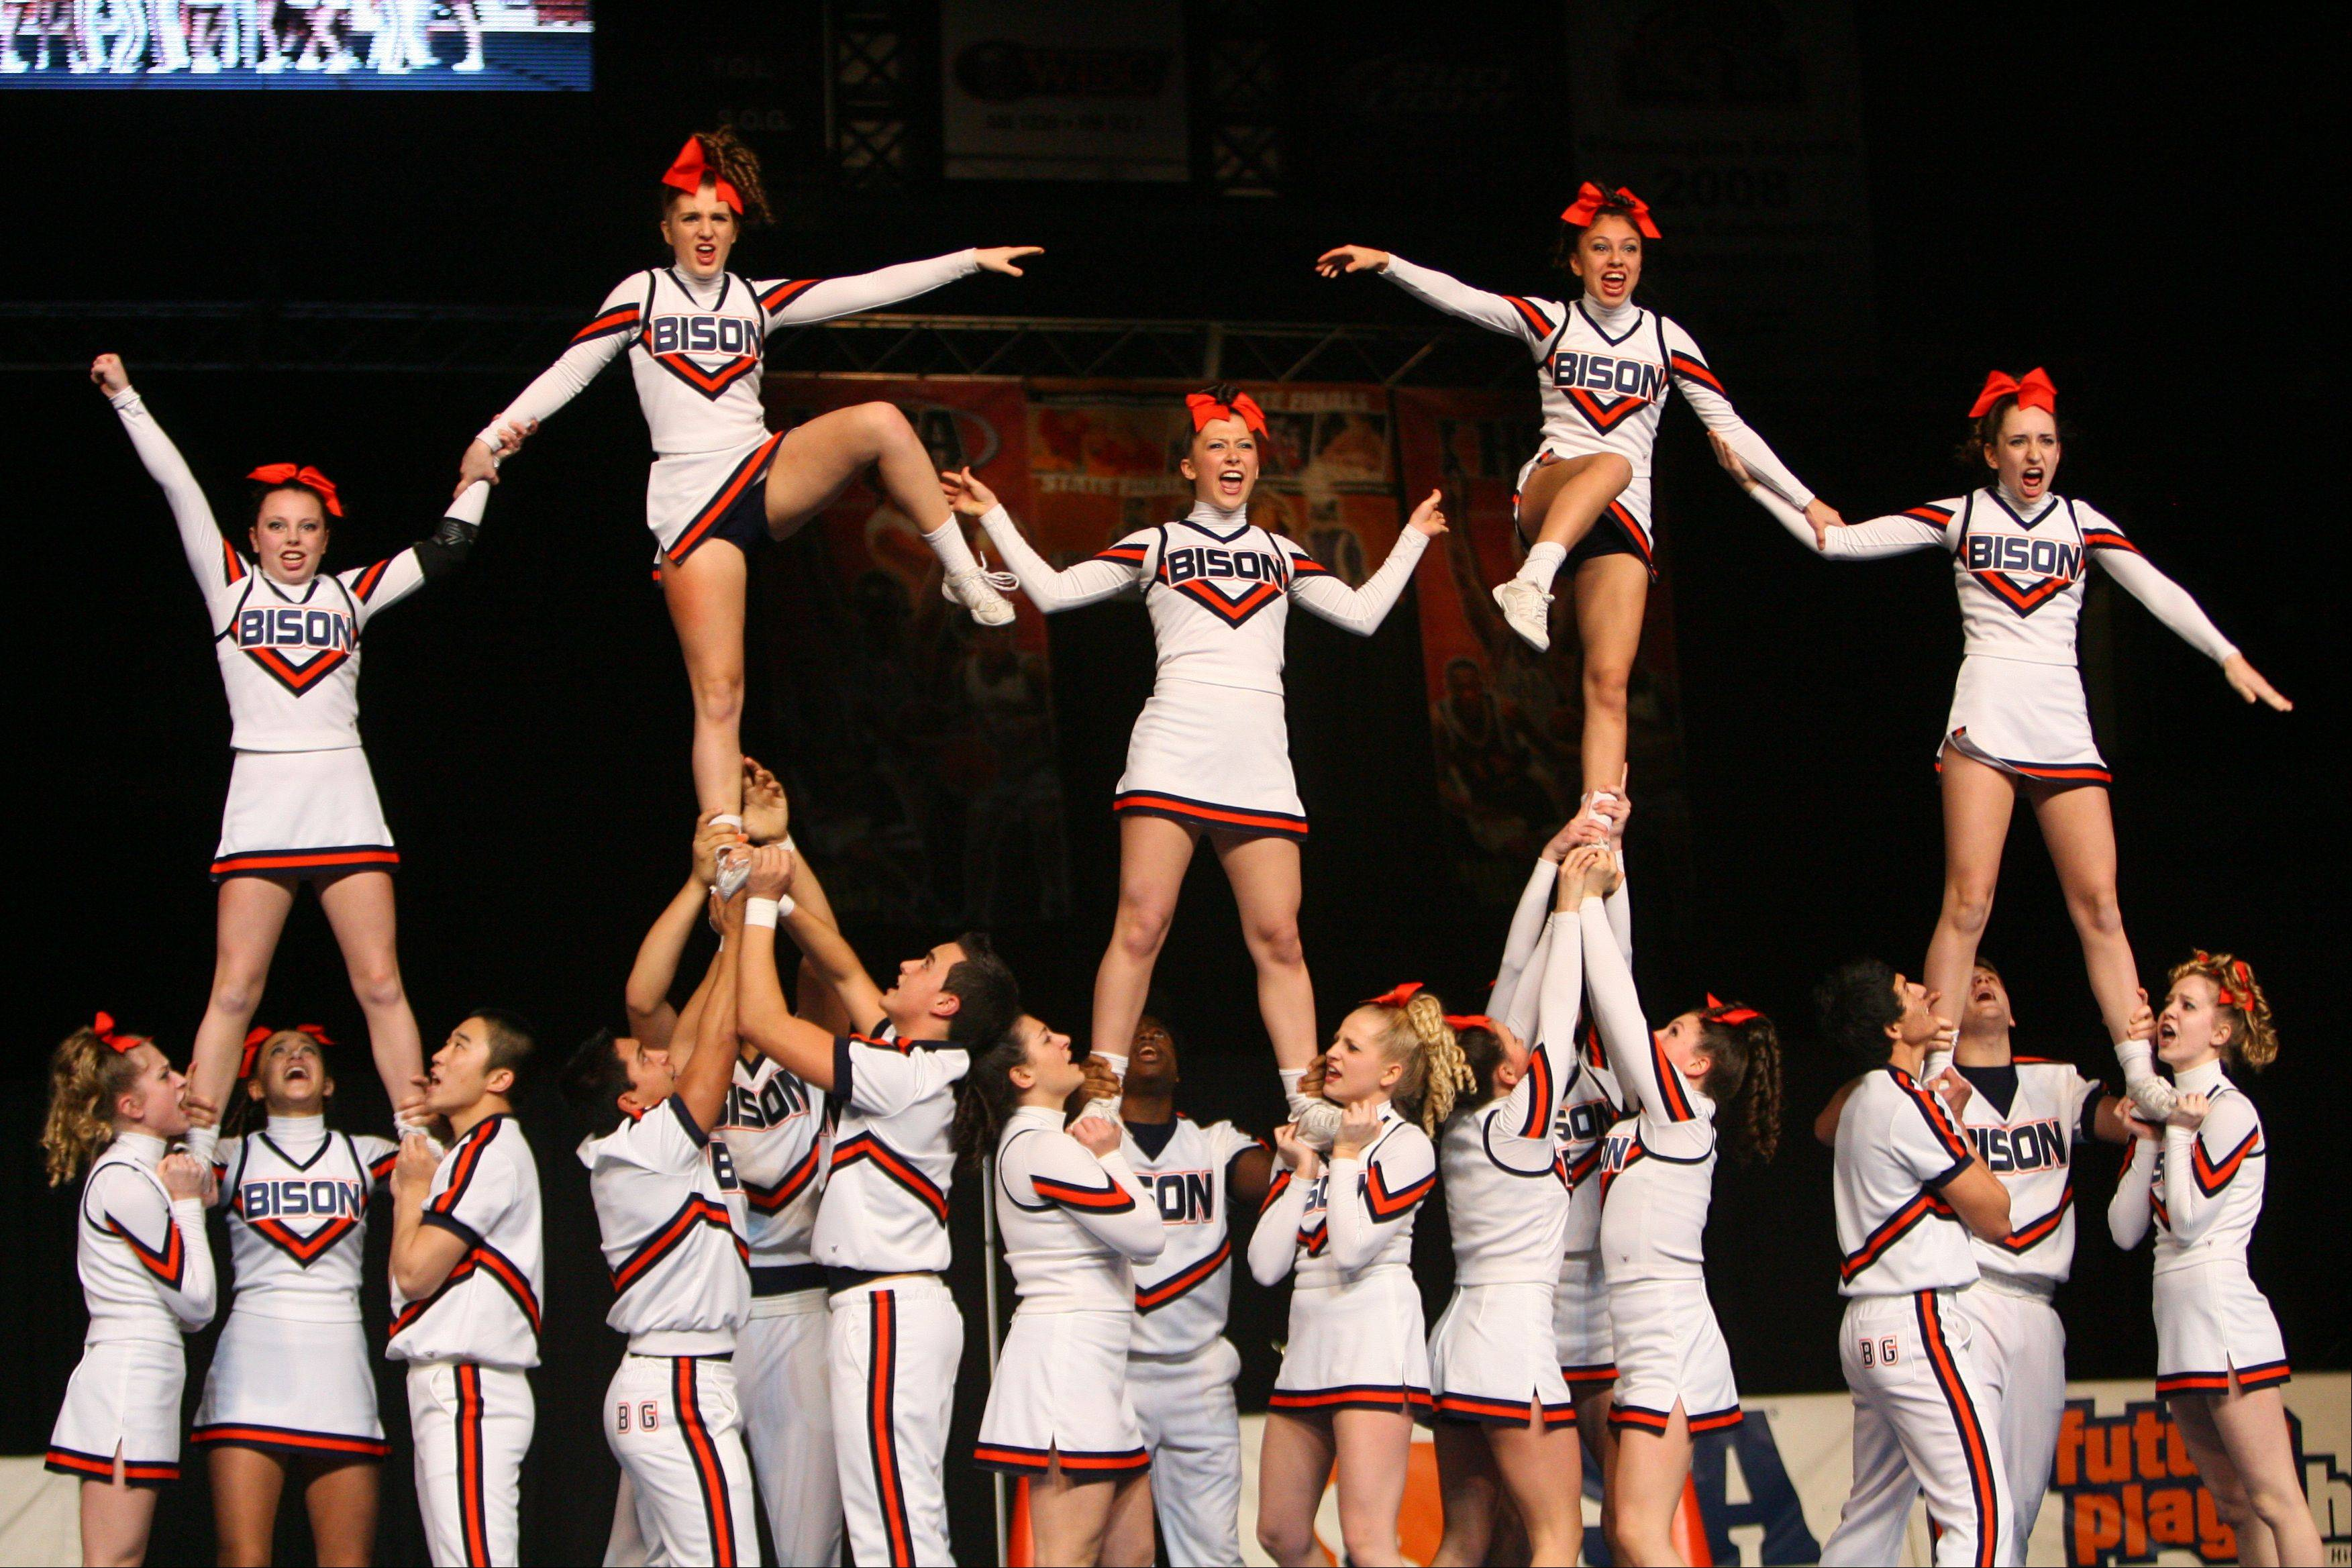 Buffalo Grove High School waits for the results in the IHSA Competitive Cheerleading finals on Saturday, Feb. 2 at the U.S. Cellular Coliseum in Bloomington.